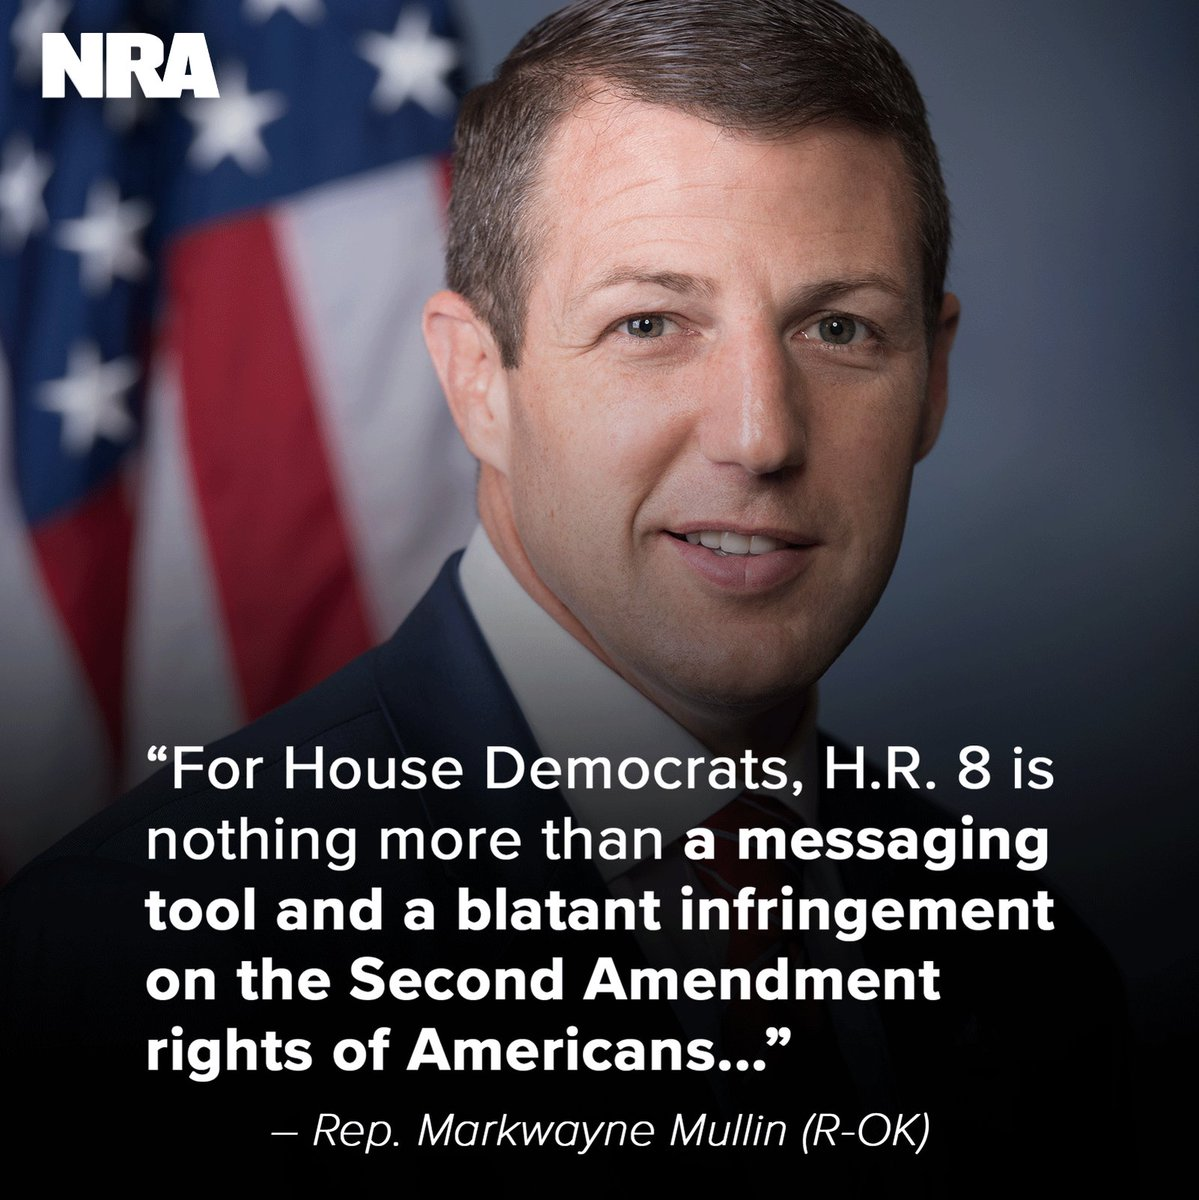 """Read this piece by @RepMullin that puts into perspective how much of a """"blatant infringement"""" H.R. 8 is on #2A. """"I will continue to be a defender of all Americans' #2A rights and speak out in opposition to this misguided legislation,"""" said @RepMullin. → http://bit.ly/Mullin2A"""